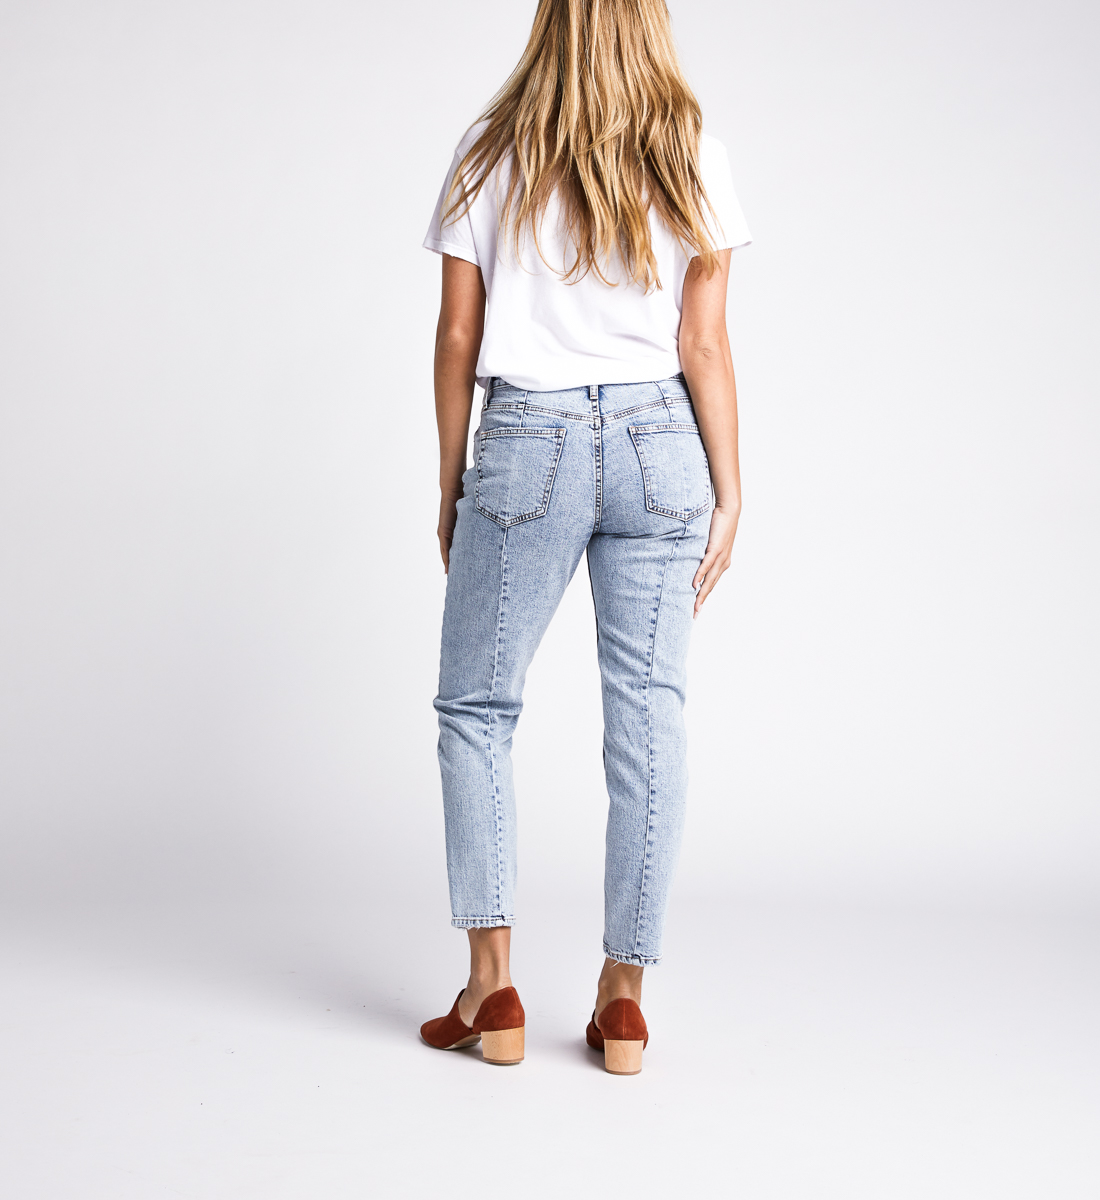 Frisco High Rise Tapered Leg Jeans,Indigo Back